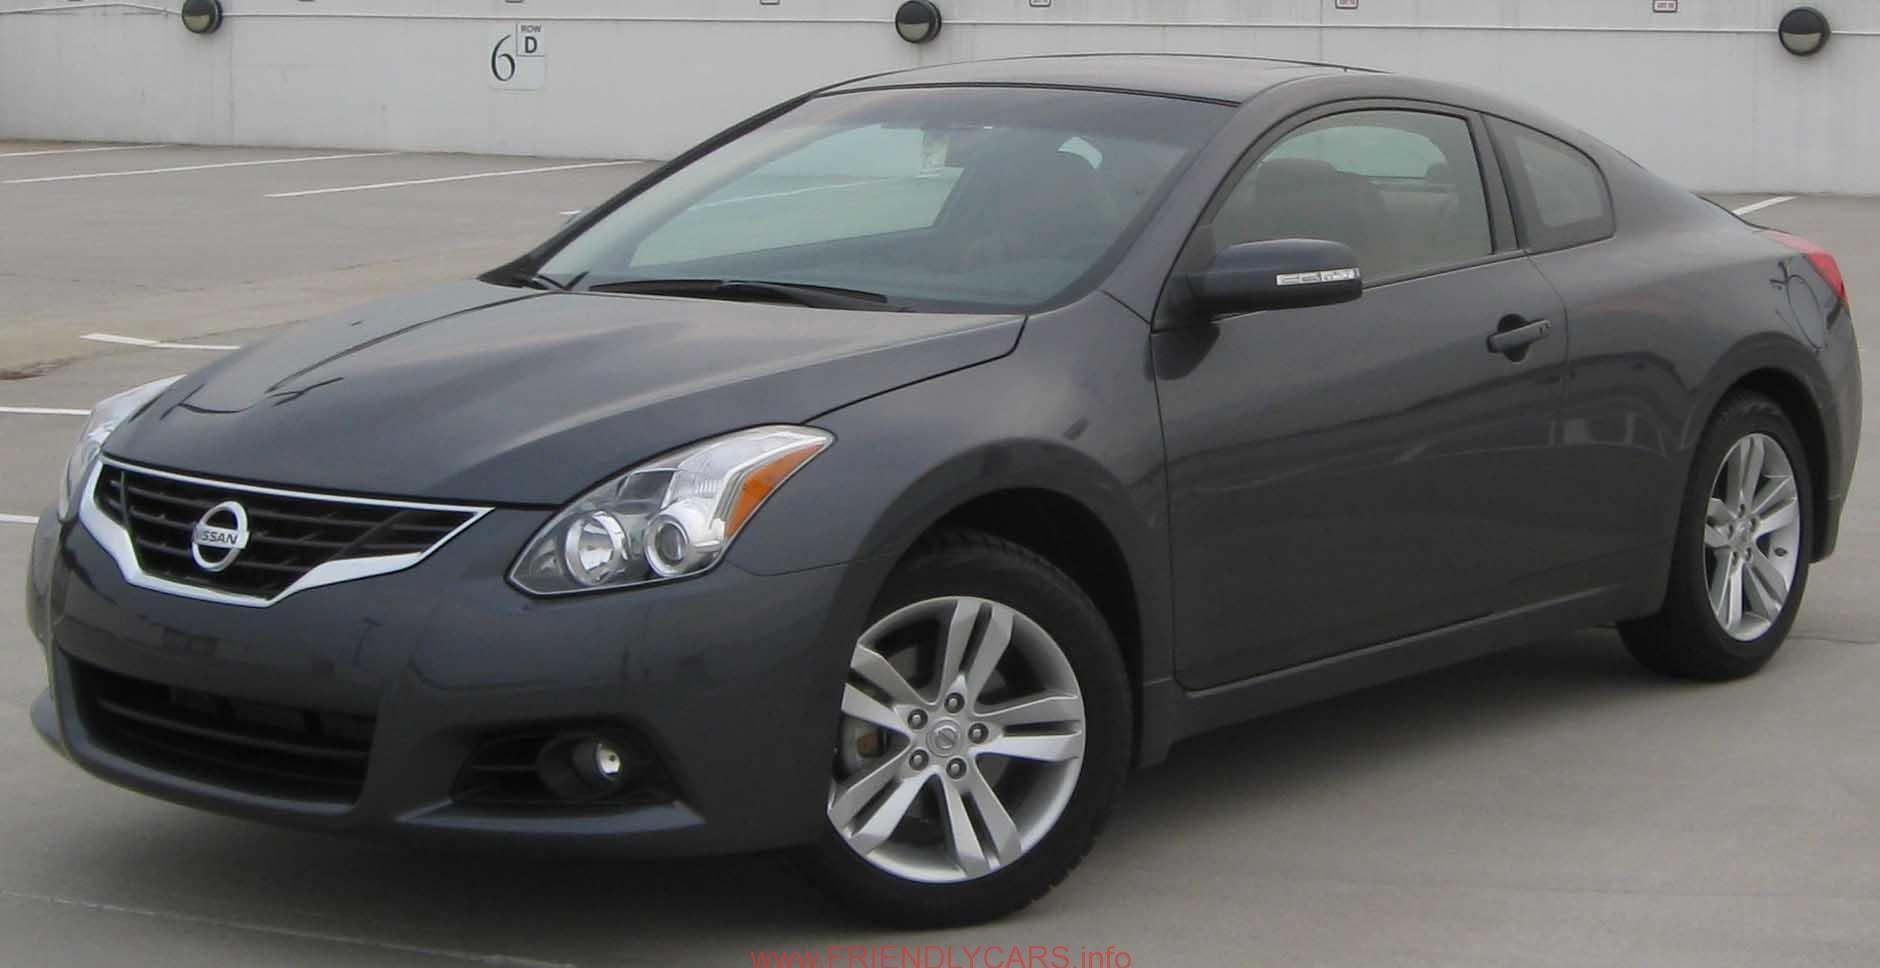 Cool Nissan Altima Coupe Interior Car Images Hd Nissan Altima